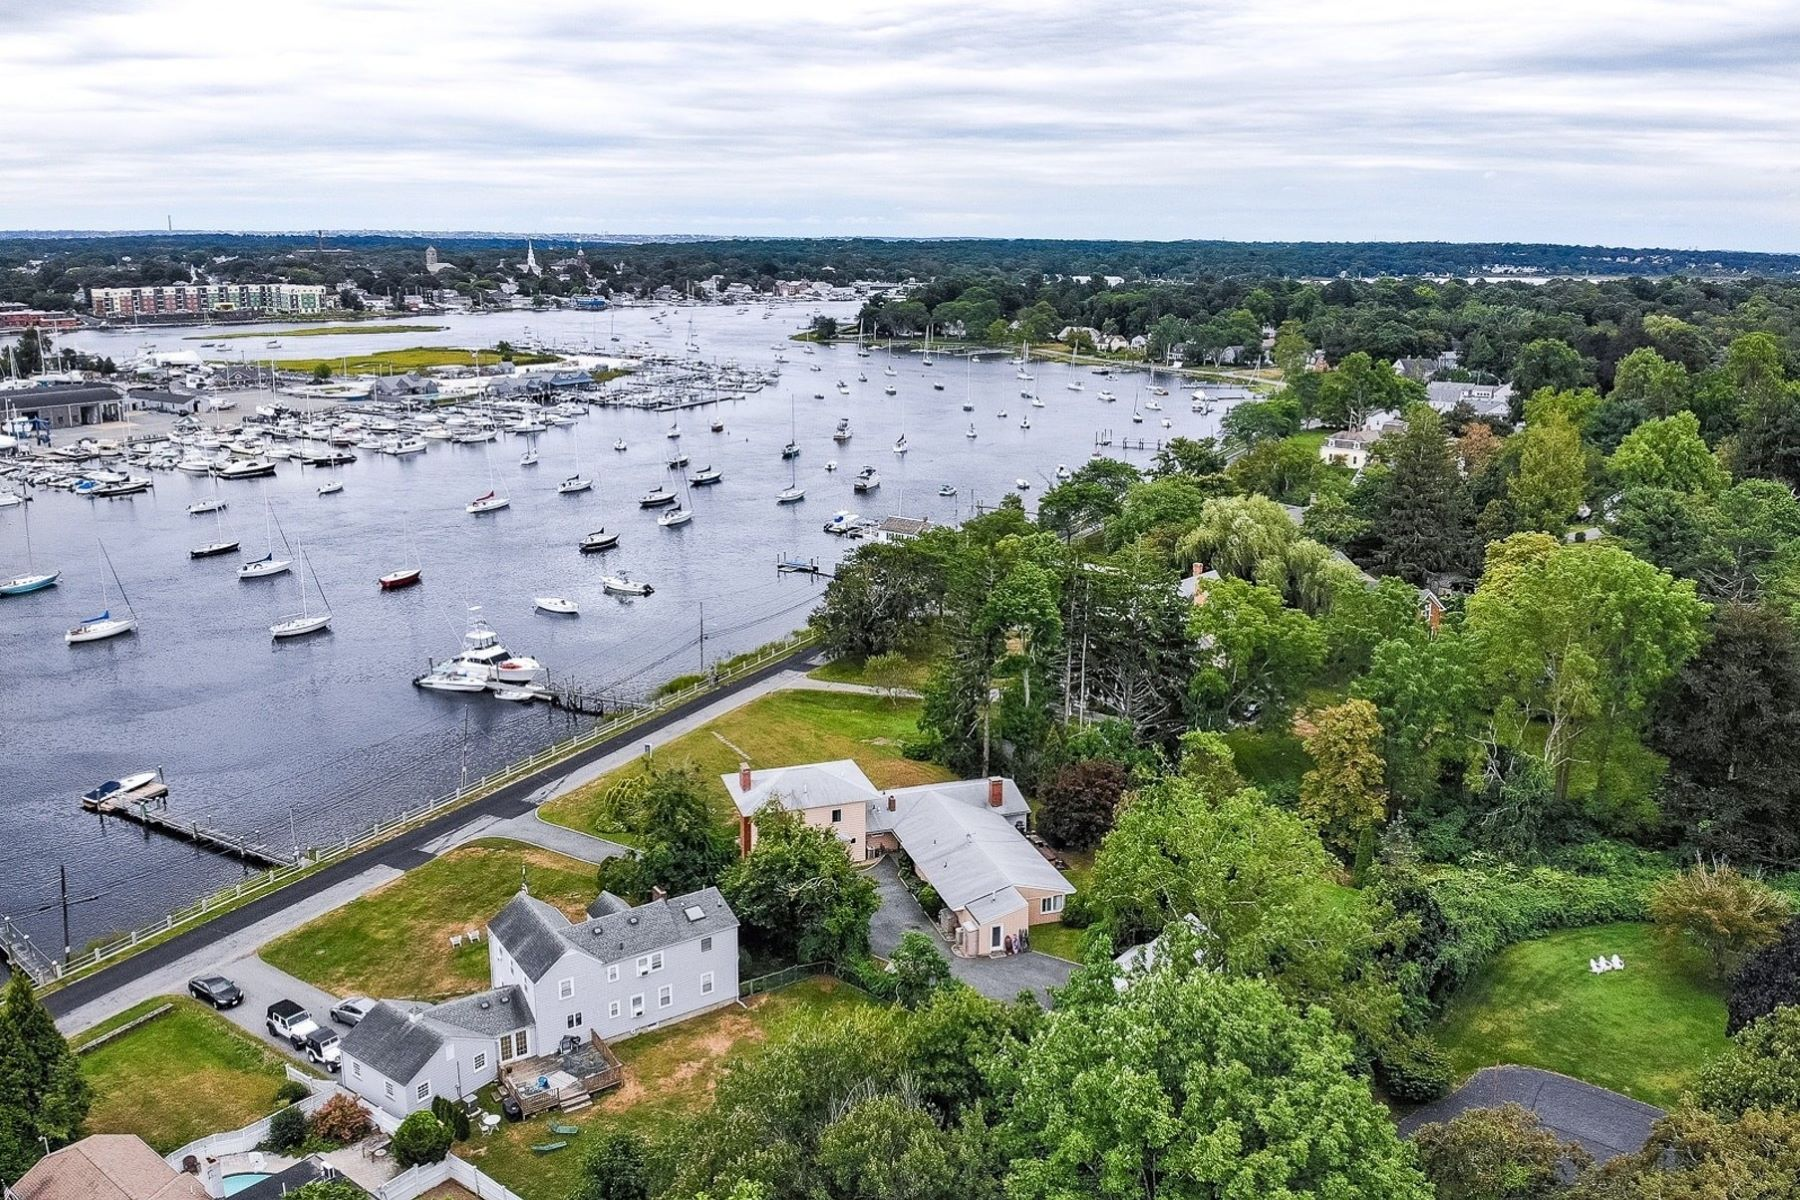 Single Family Homes for Sale at 11 Mathewson Road, Barrington, RI 11 Mathewson Road Barrington, Rhode Island 02806 United States